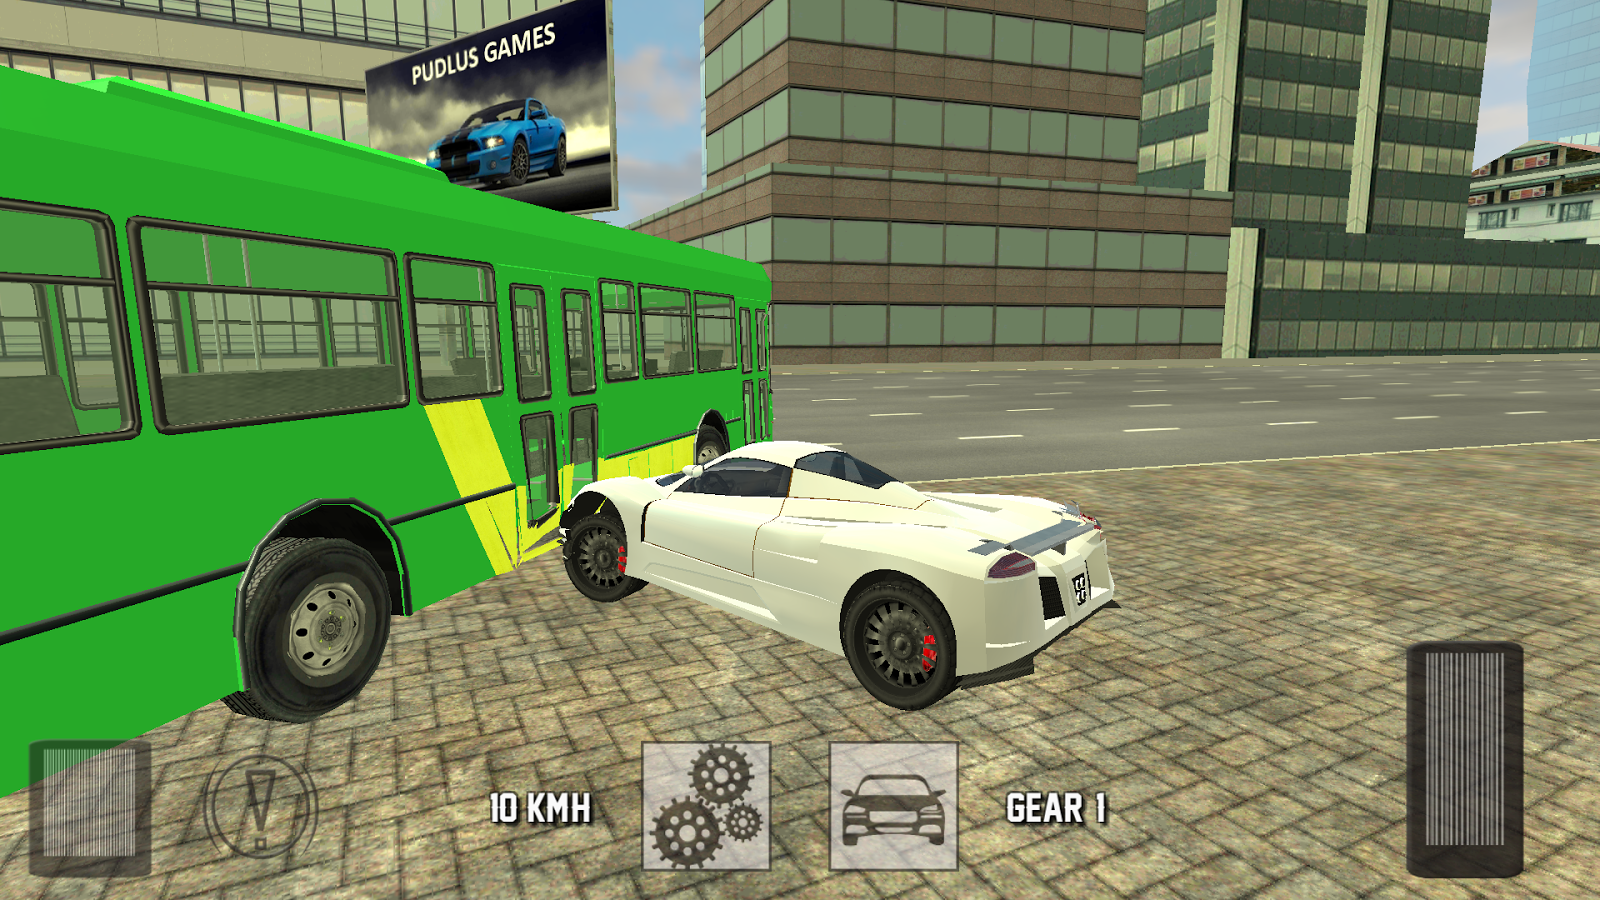 Super car city driving sim free games free online - Luxury Car Driving 3d Screenshot